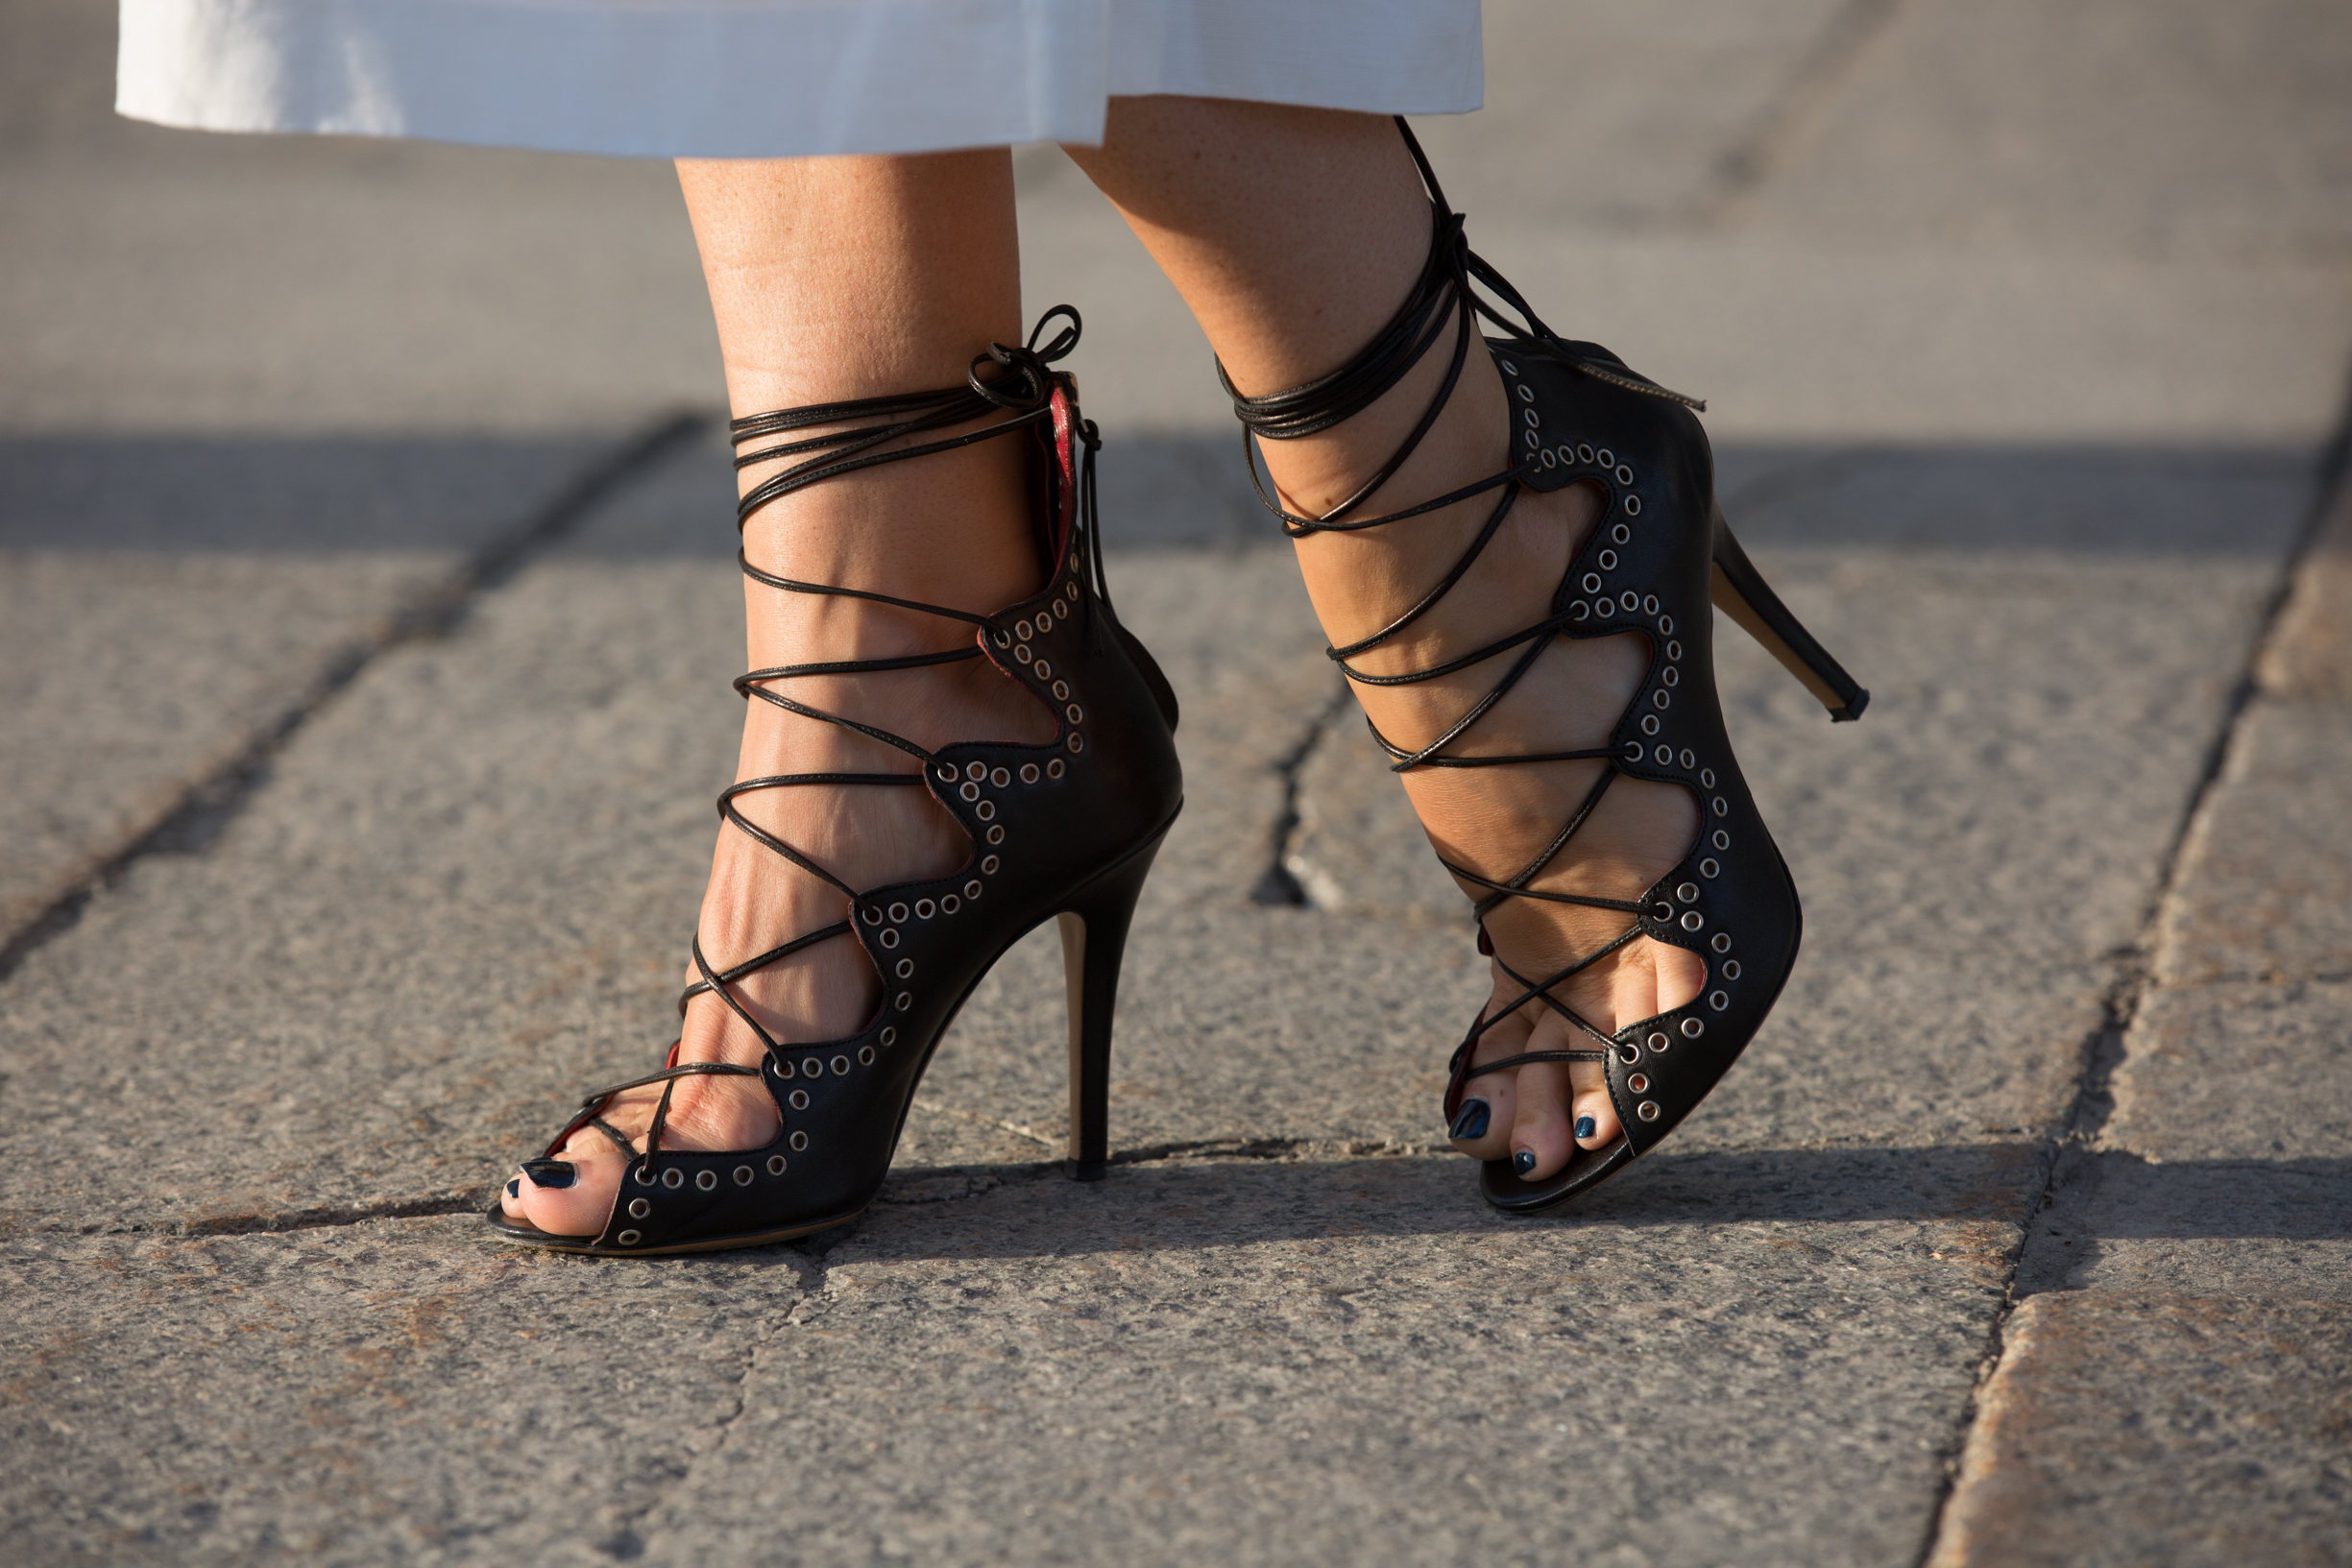 isabel marant shoes mademoiselle jules fashion blogger tnt fashion the new trend